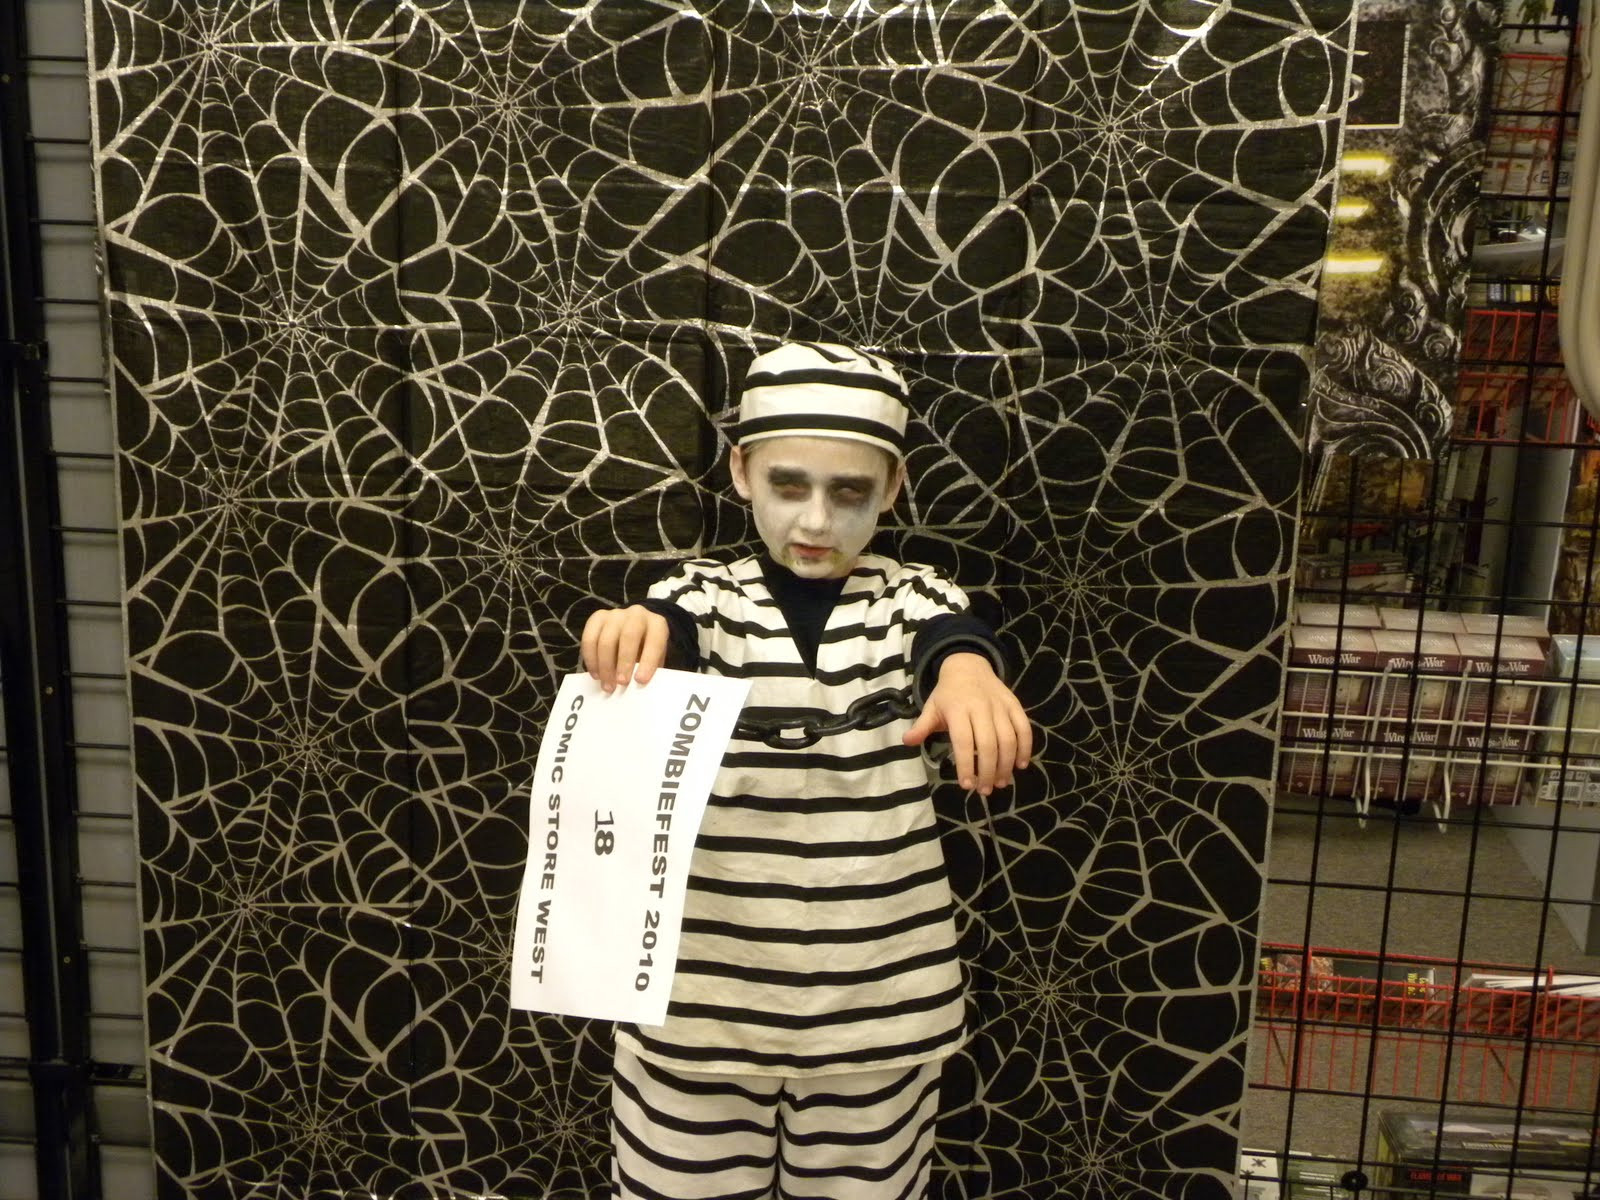 Best ideas about DIY Prisoner Costume . Save or Pin icStoreWest Costume Contest Winners under 13 Now.